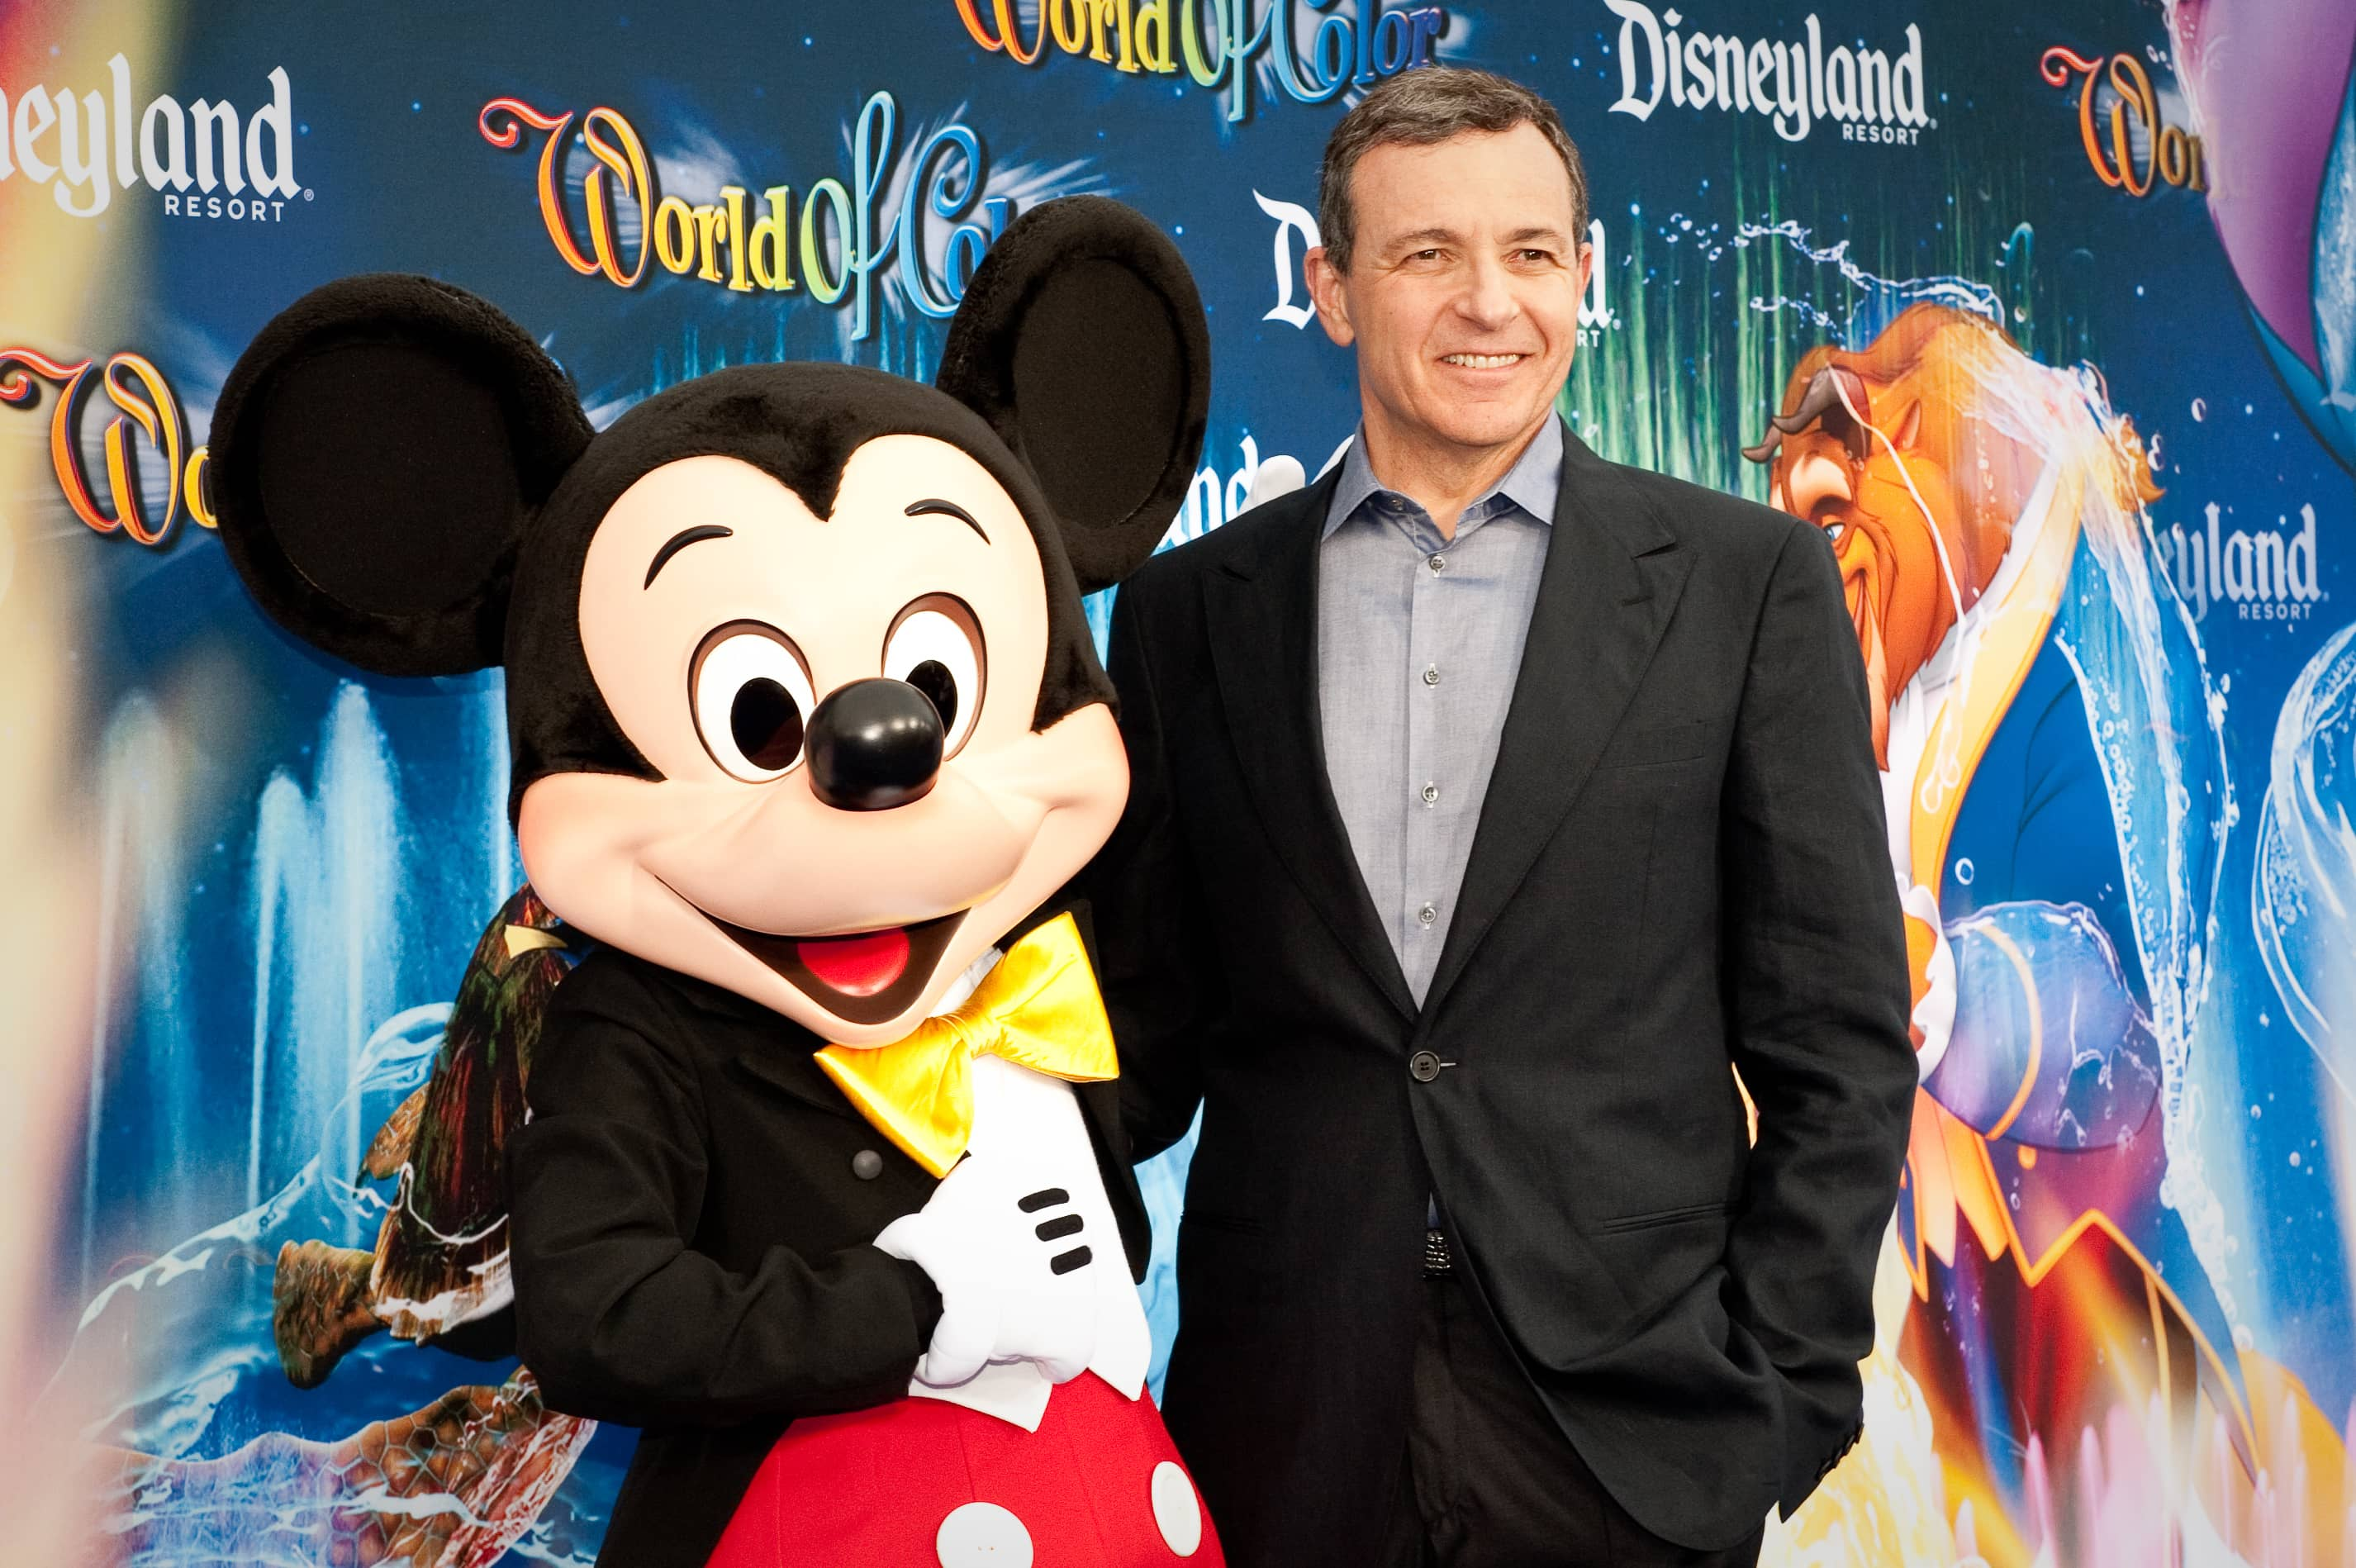 With Apple TV+ ready to compete against Disney+, Bob Iger resigns from the Apple board.